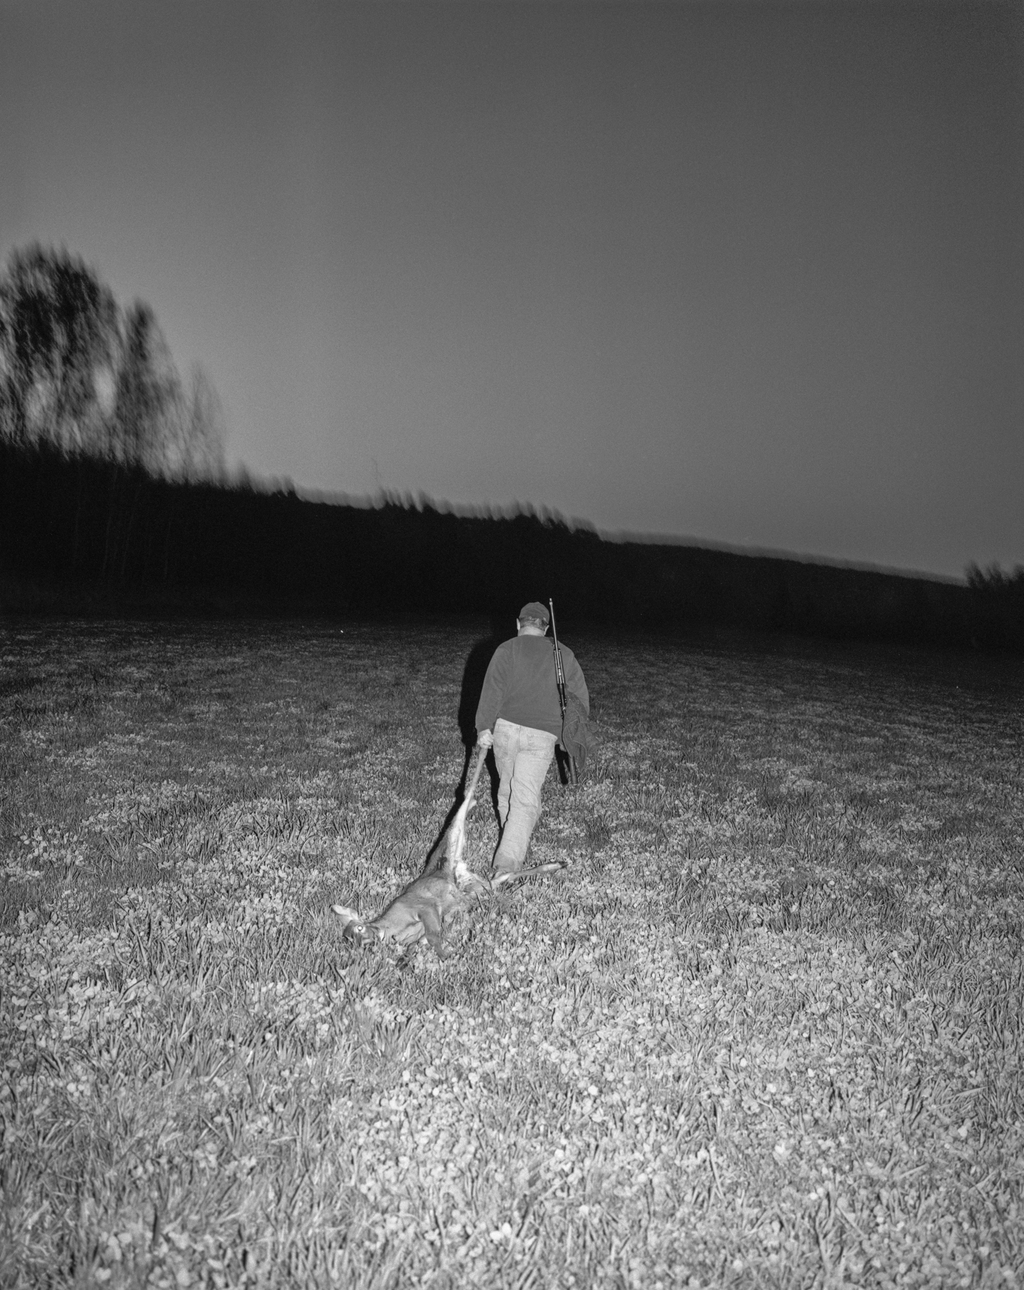 Hunter#1, Boonville,NY,2007. © Timothy Briner